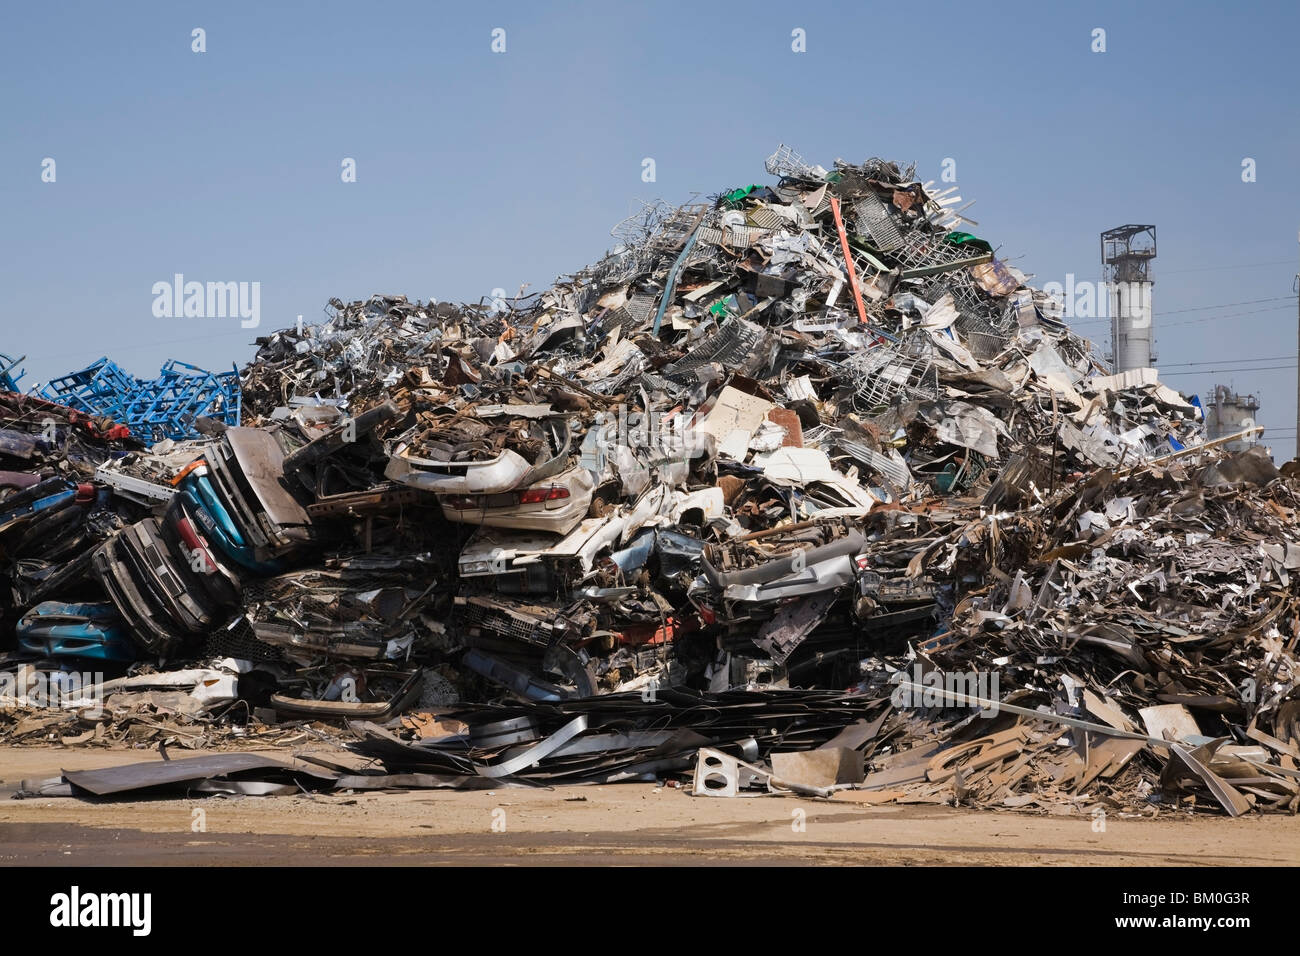 Pile of discarded automobiles, household and industrial items at scrap metal recycling yard, Quebec - Stock Image